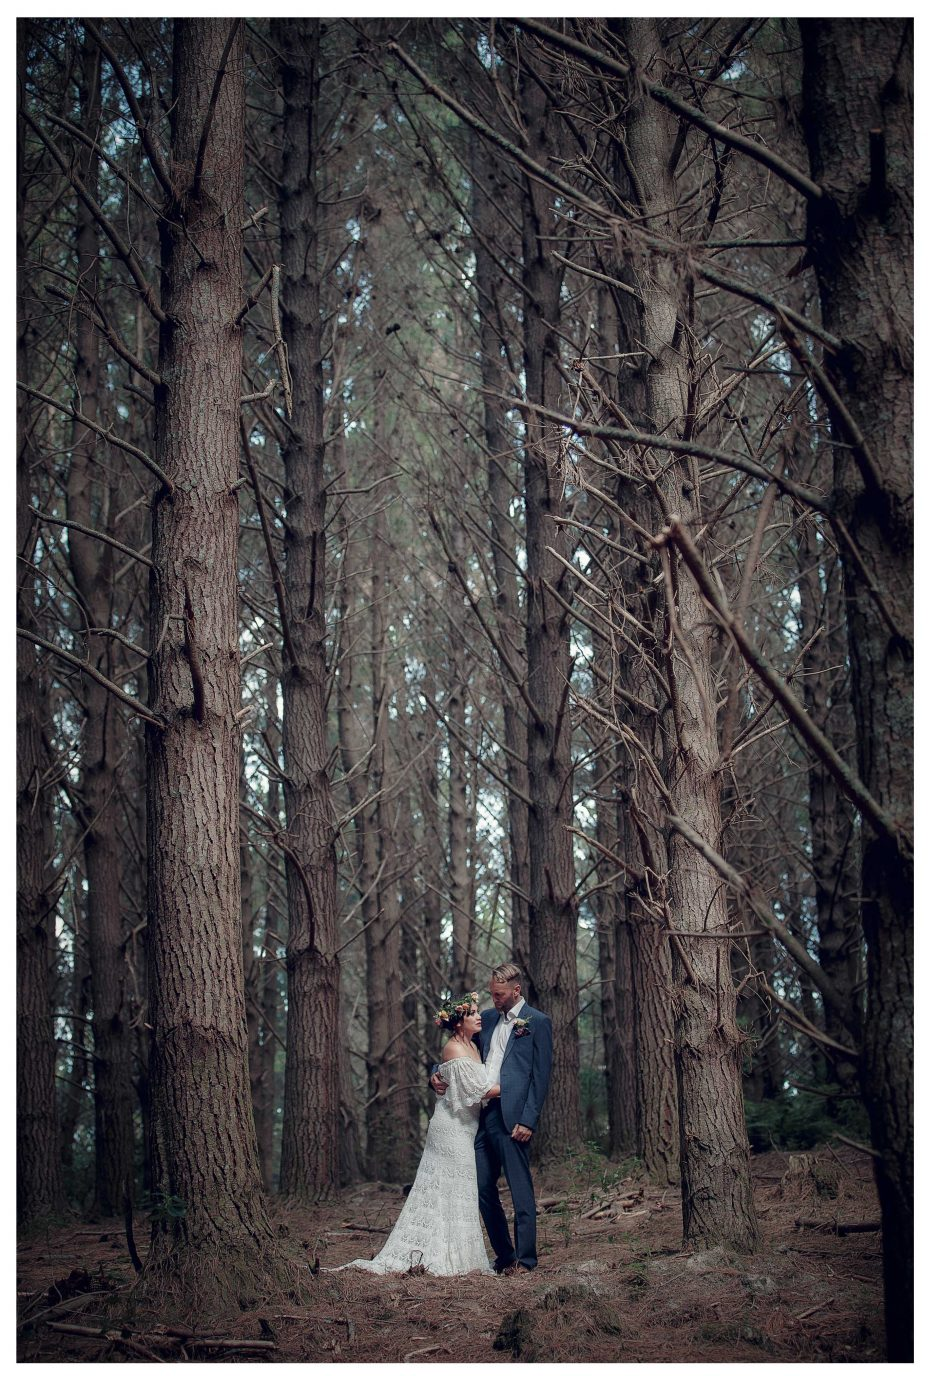 Bridal creative location weding photo, Bride and groom amoung huge trees, Riverhead Forrest wedding photo, Kumeu Valley